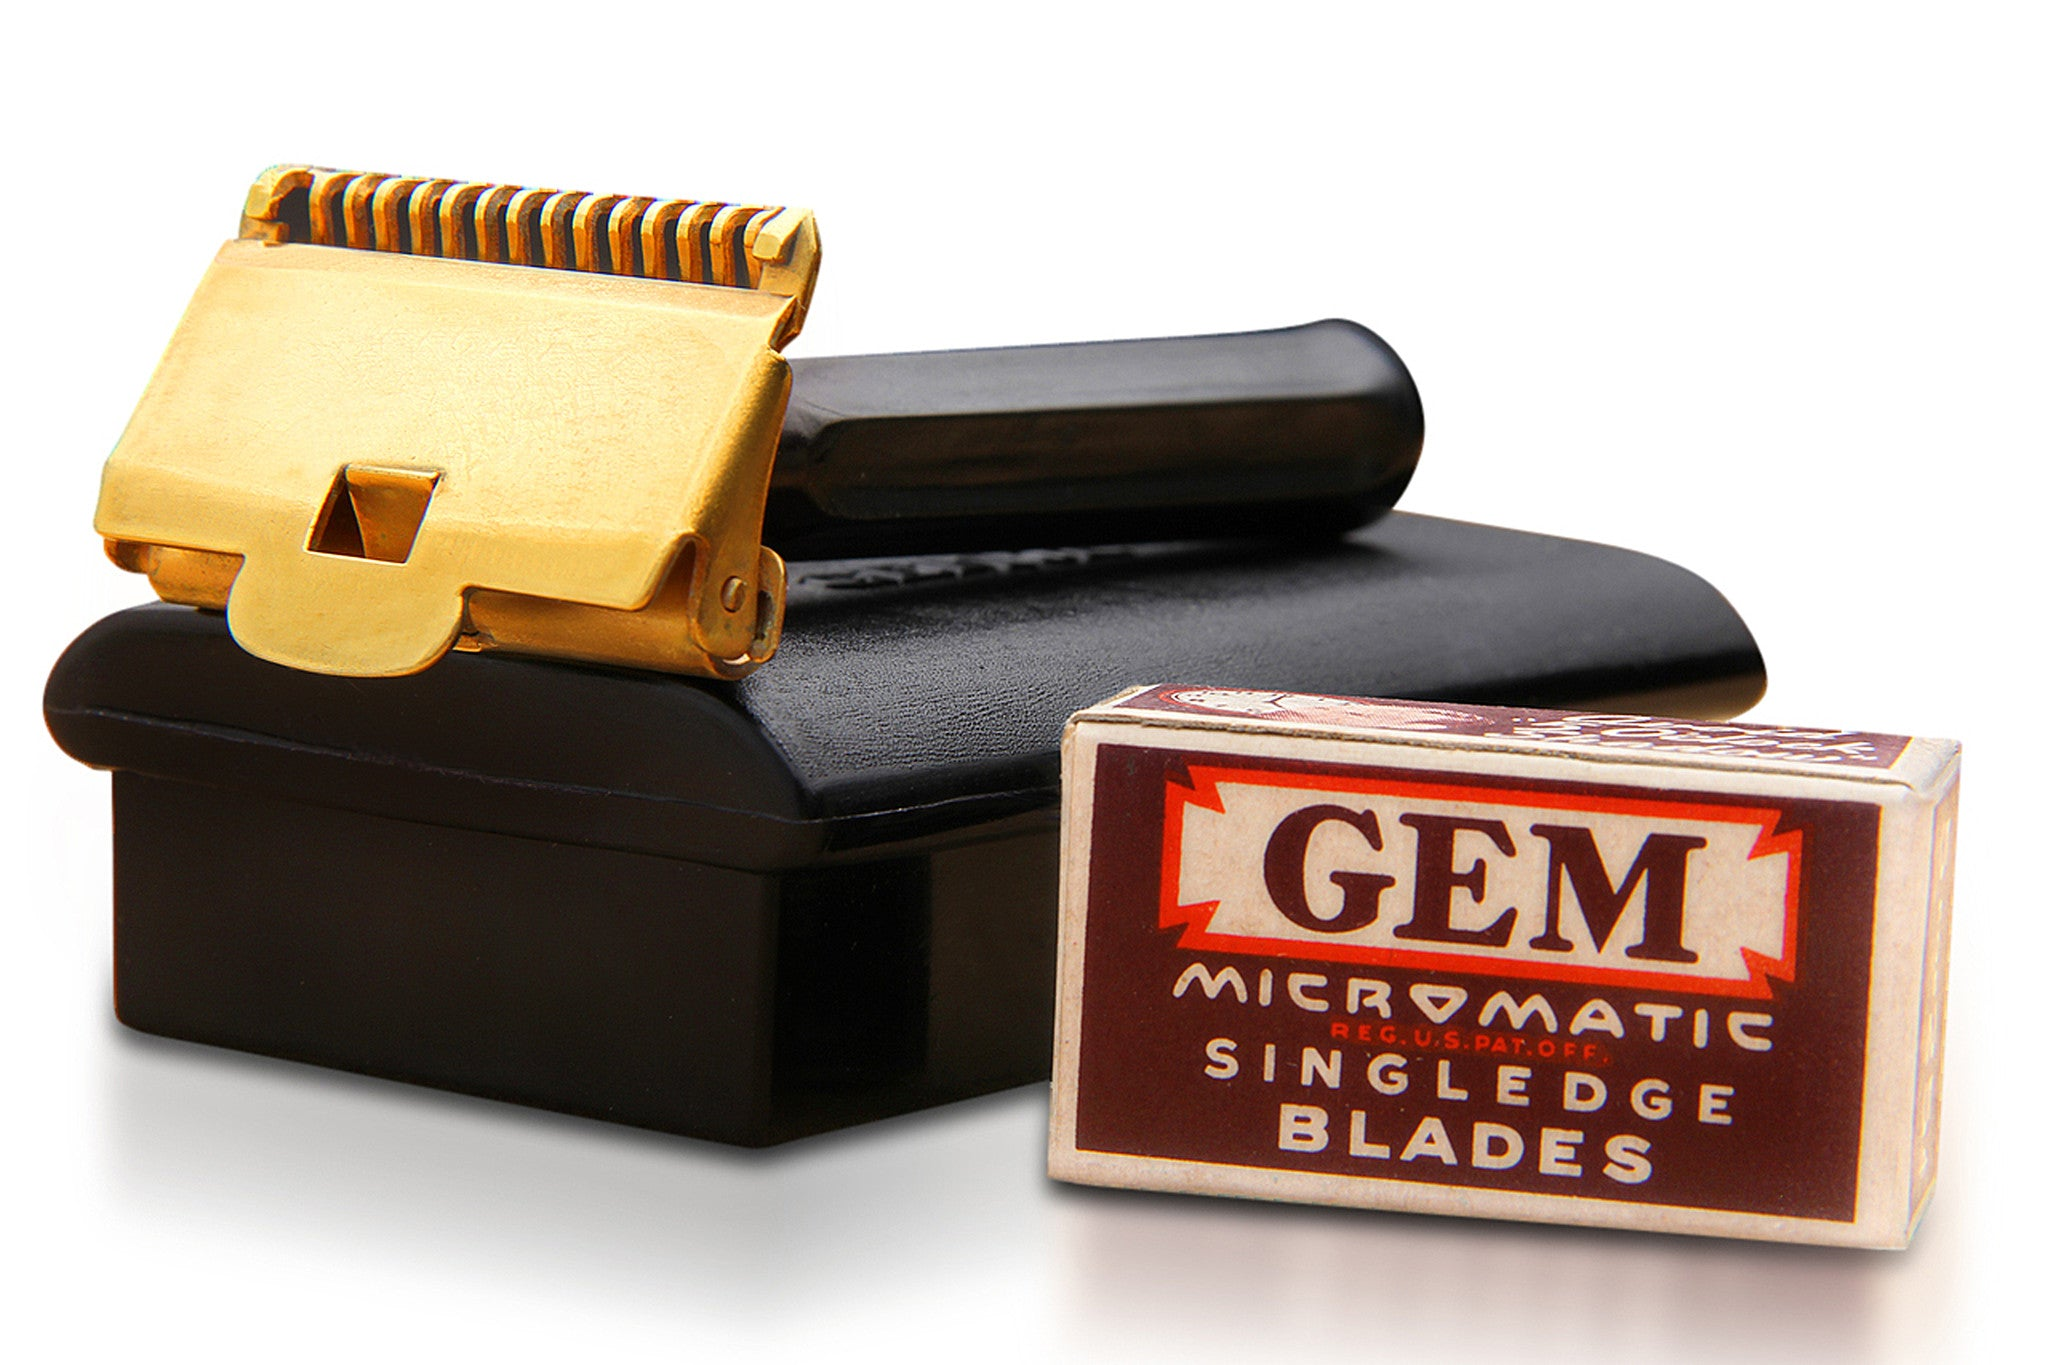 1940's Gem Junior Safety Razor